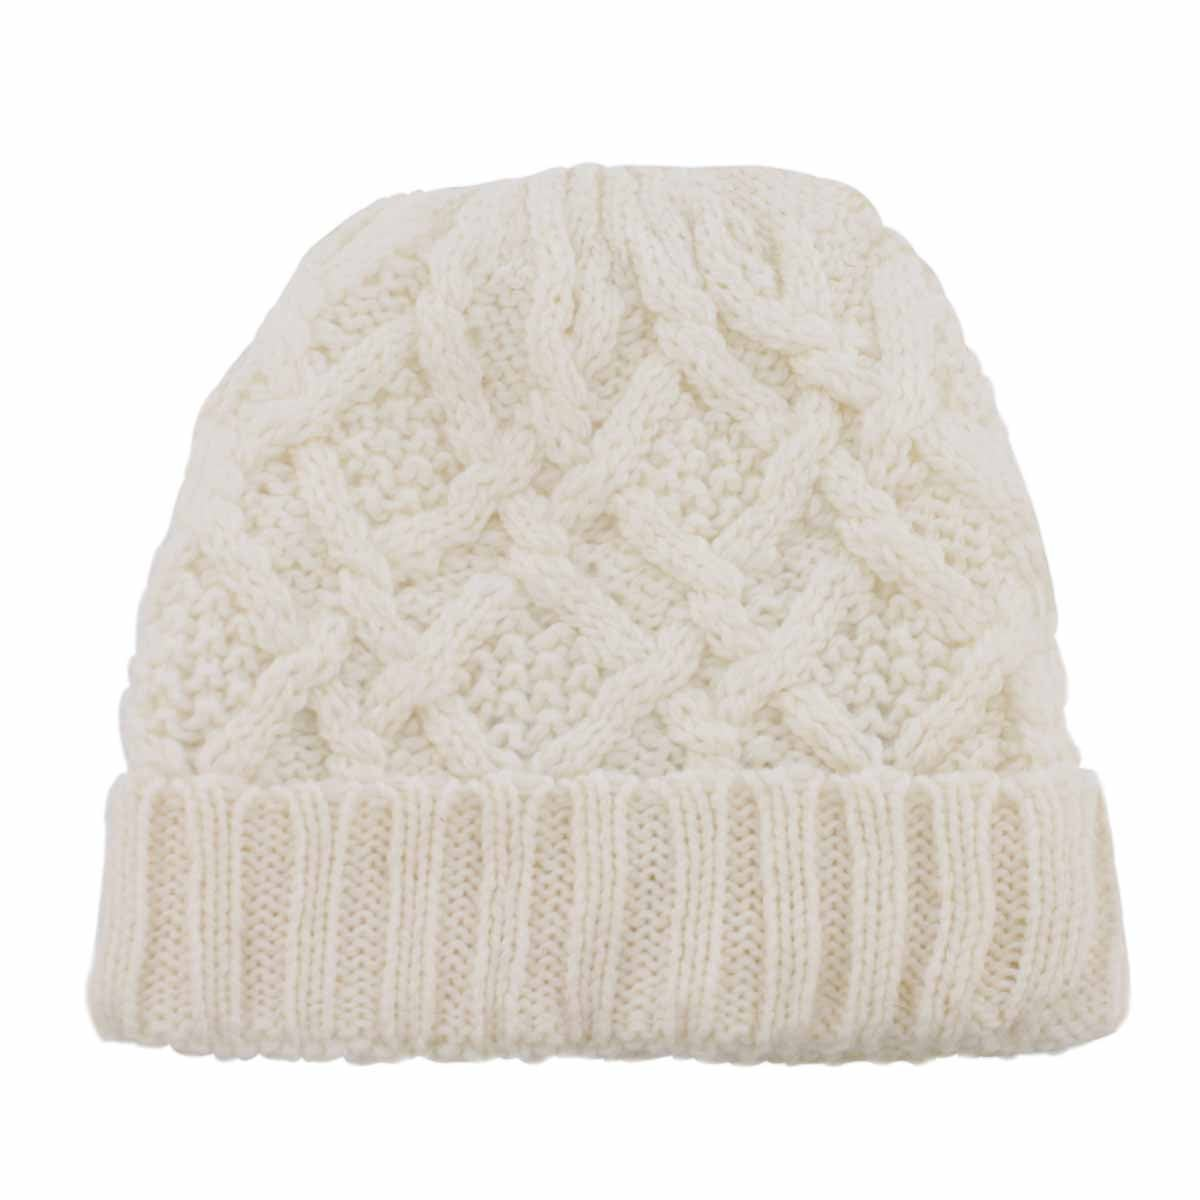 Women's CABLE KNIT off white lined hat